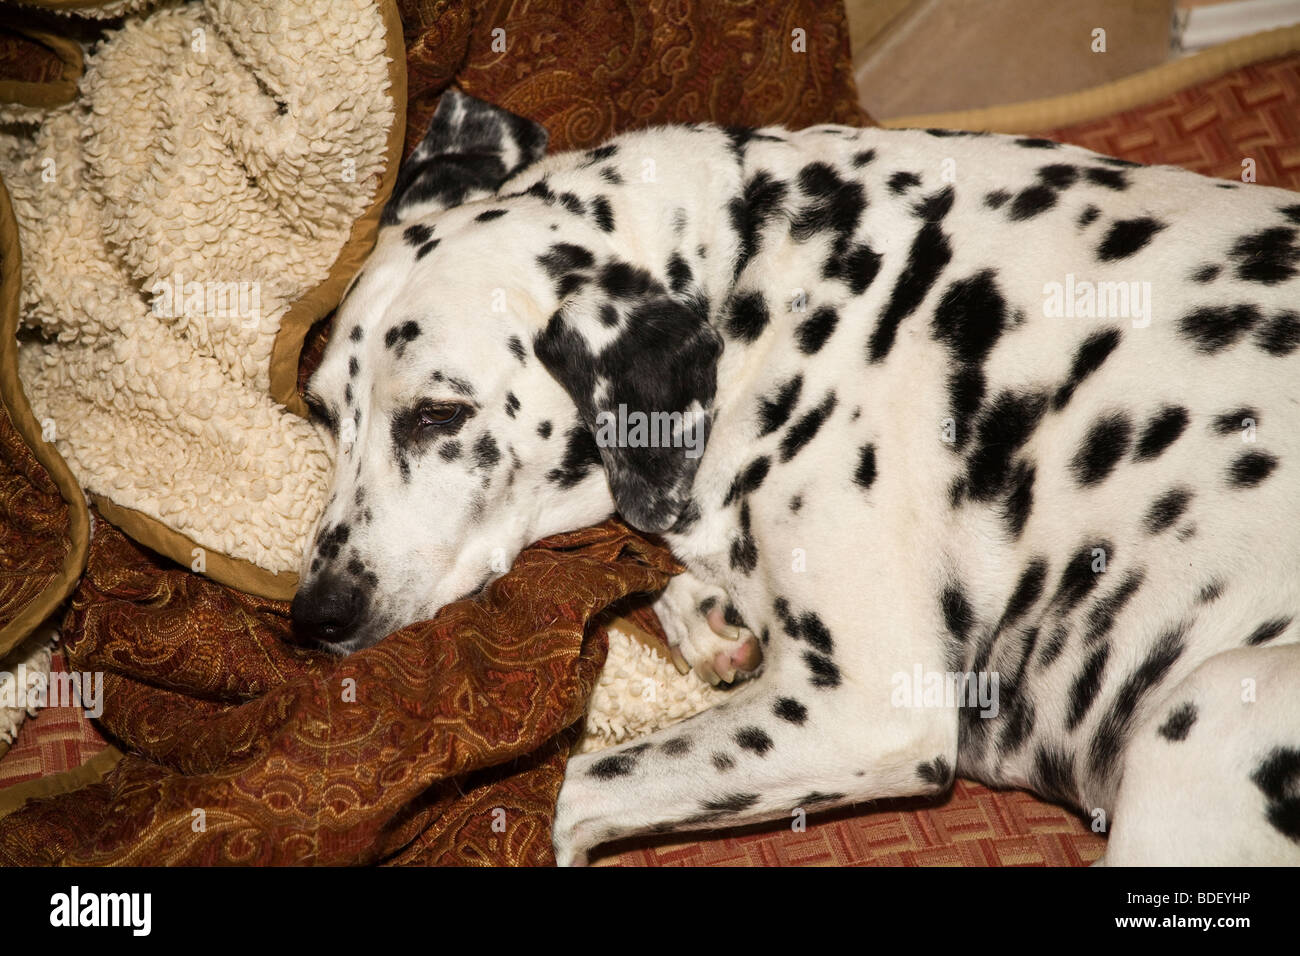 Dalmatian dog asleep  napping on cushion in home.  top view above MR - Stock Image